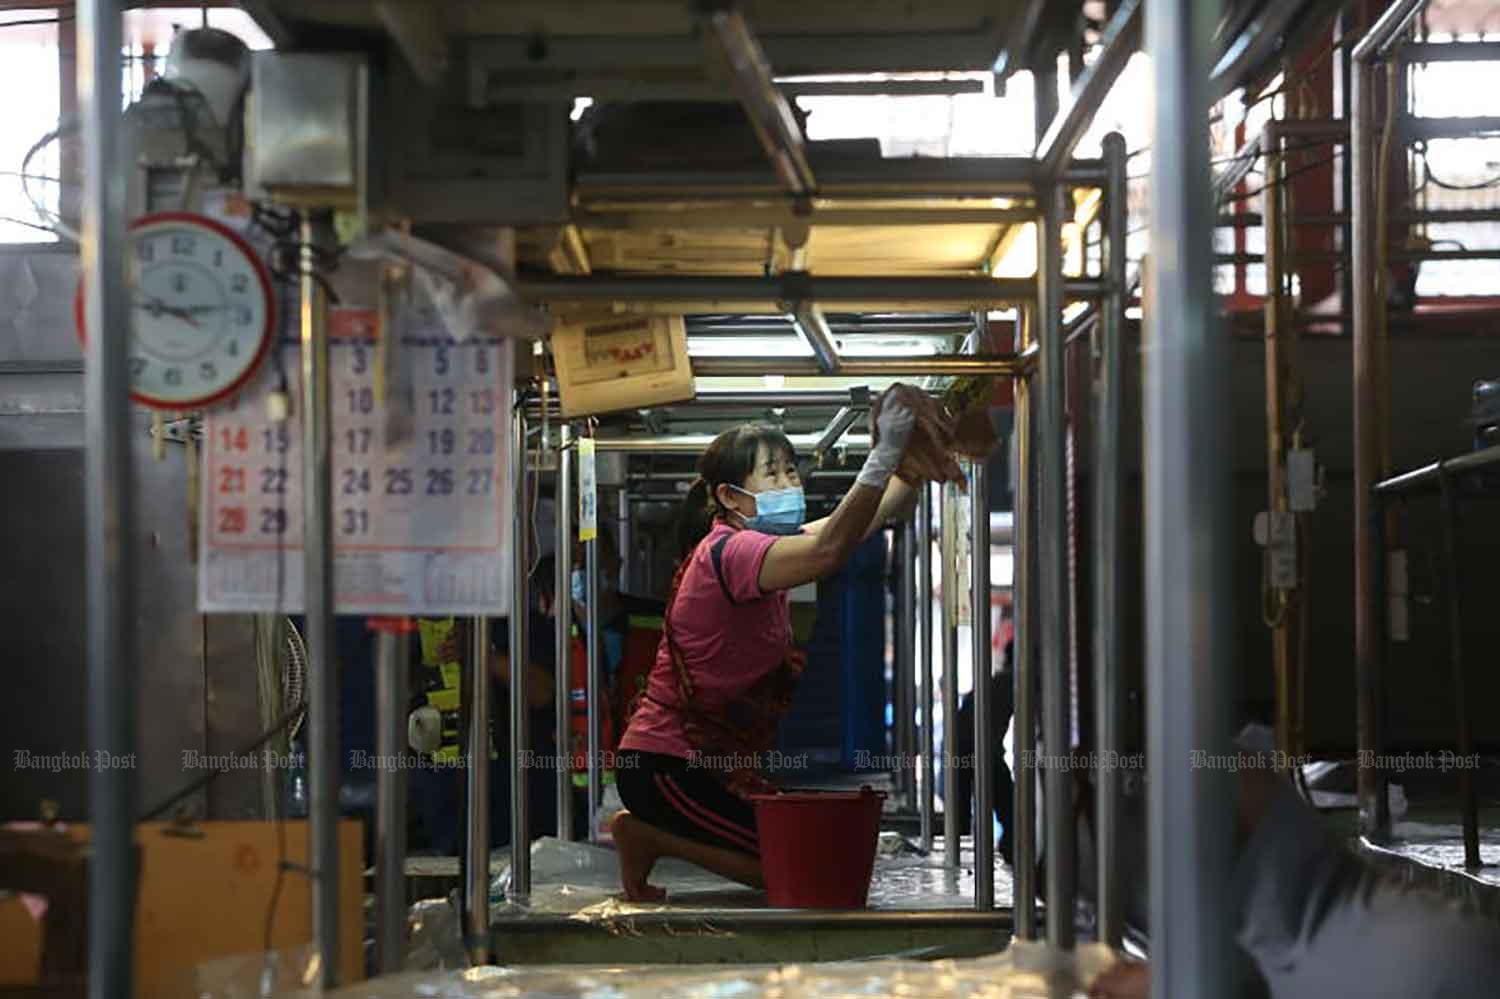 A market vendor in Bangkok's Bang Khae district disinfects her stall on Tuesday after the market was closed as a precaution against Covid-19. City Hall will decide if the market can reopen after three days of mass testing. (Photo: Pattarapong Chatpattarasill)